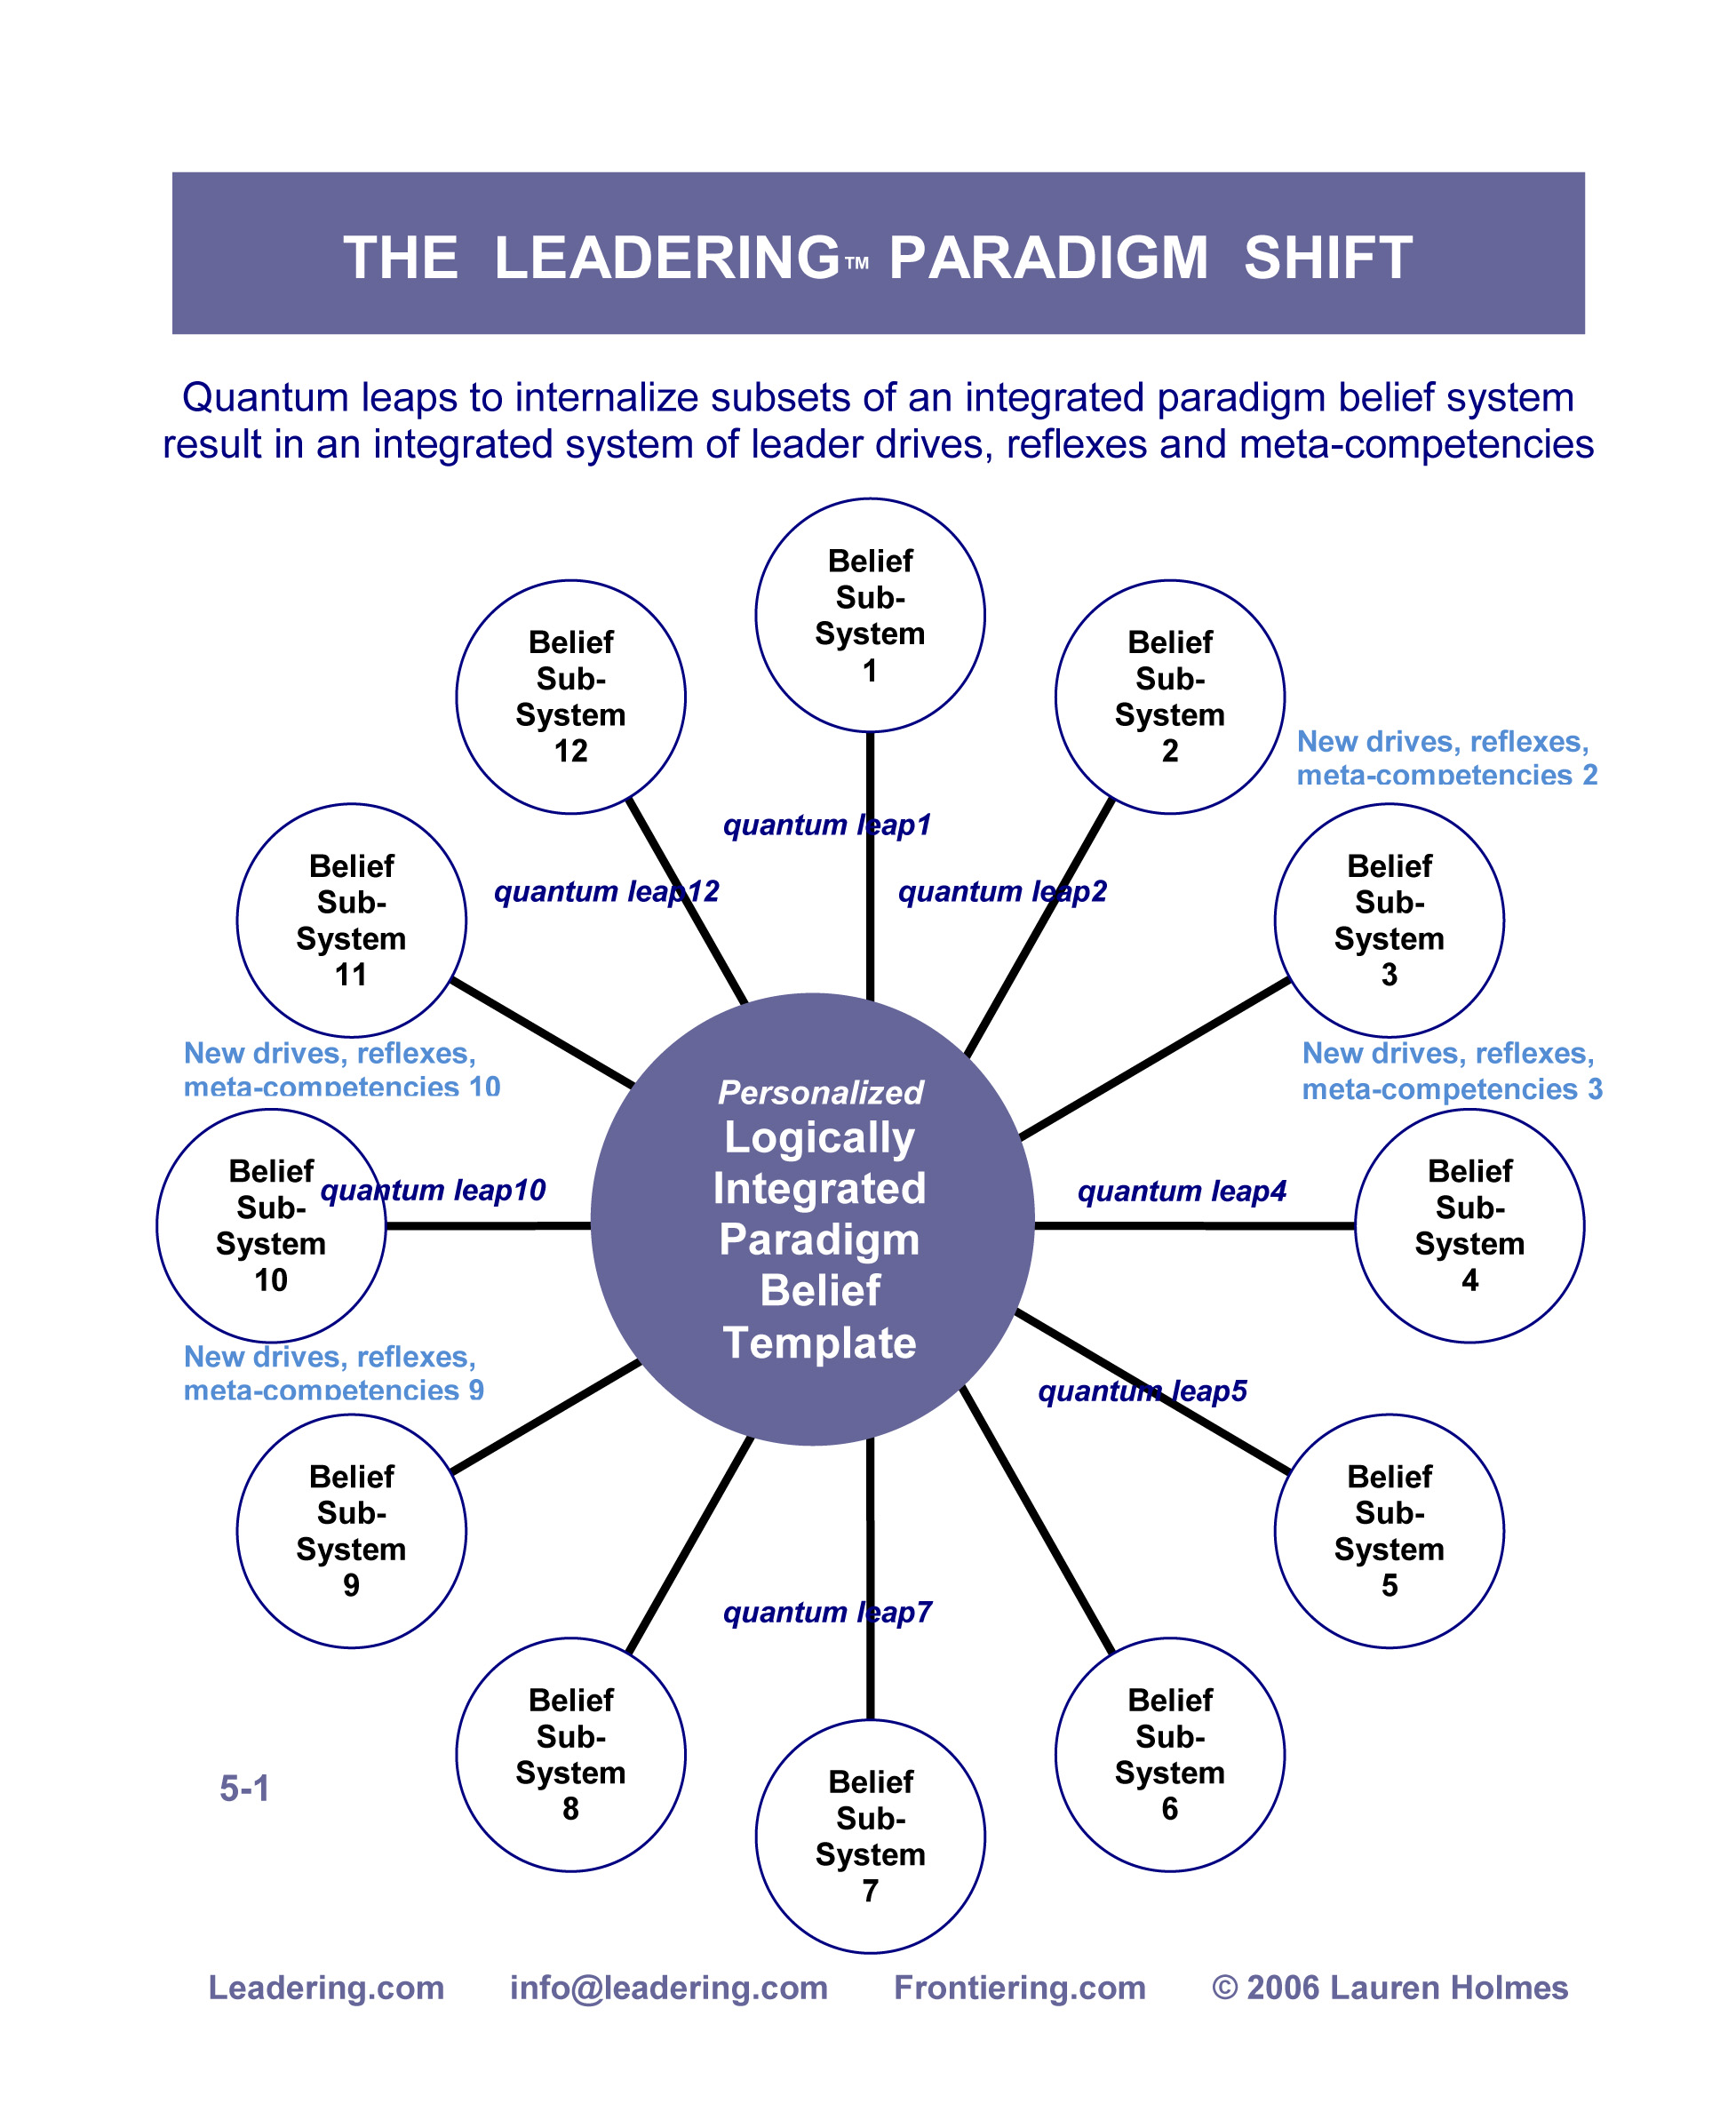 PARADIGM SHIFT DIAGRAM